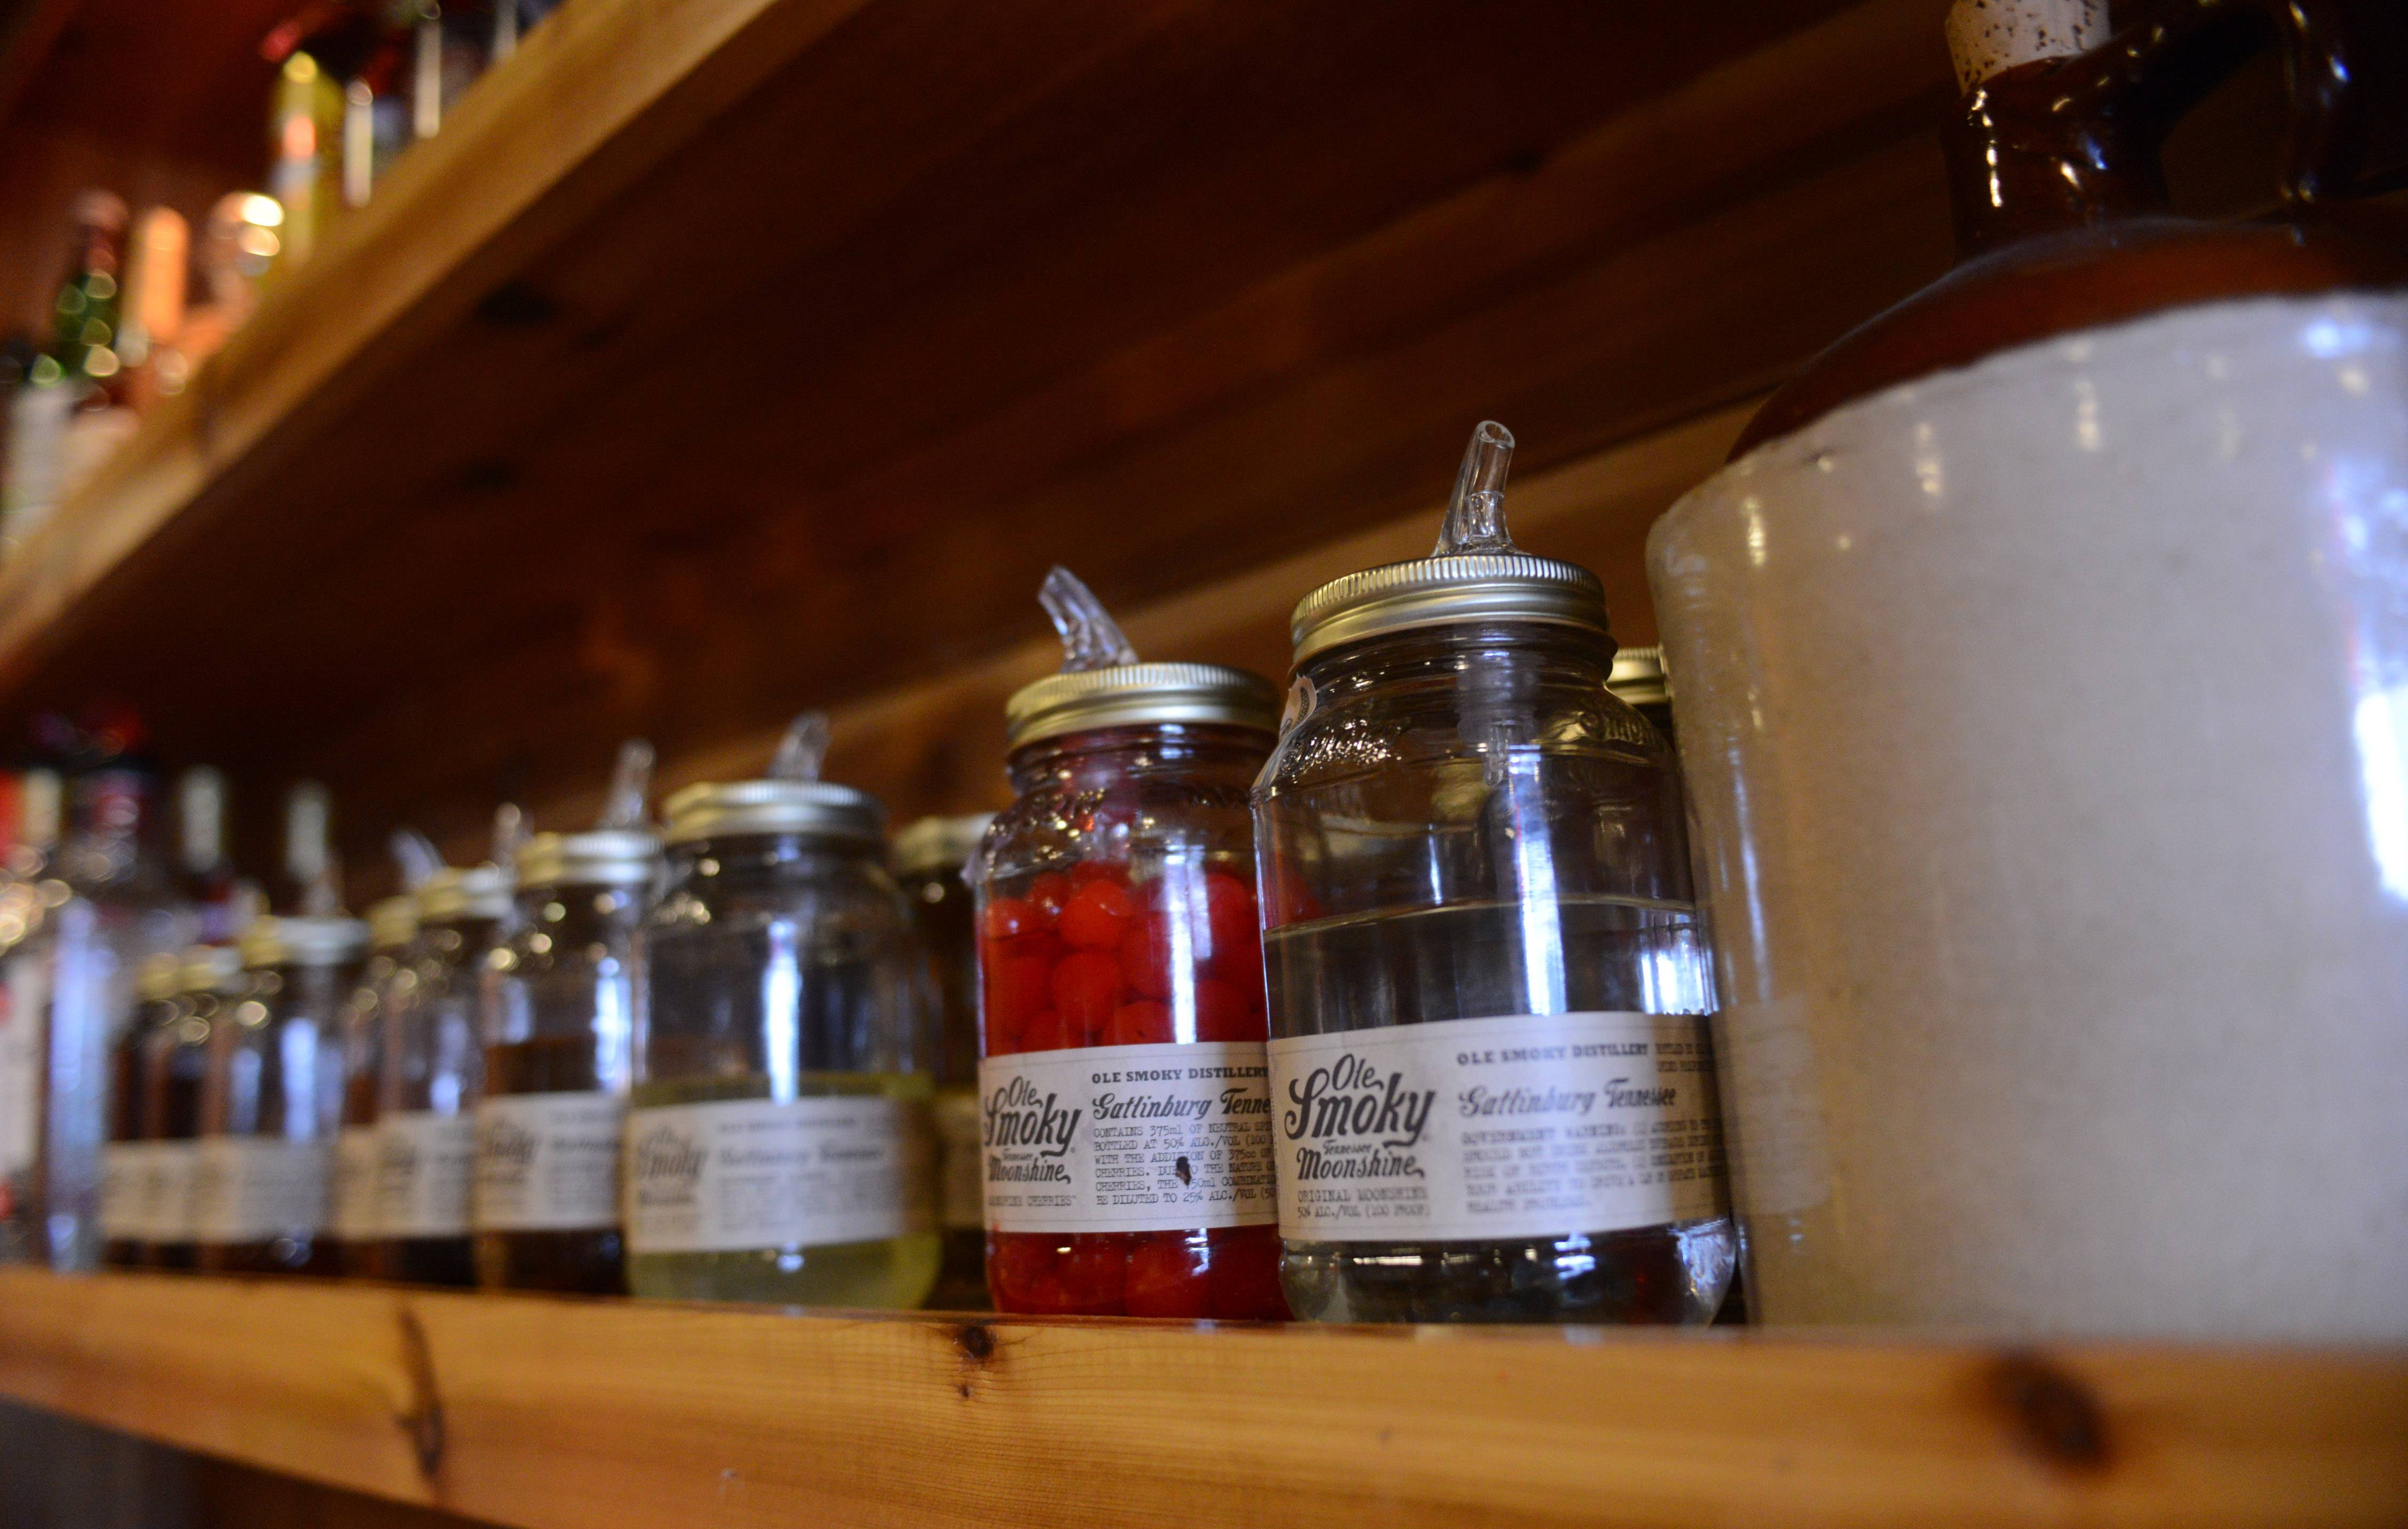 The Still Bar and Grill in Bartlett plays up its moonshine theme.